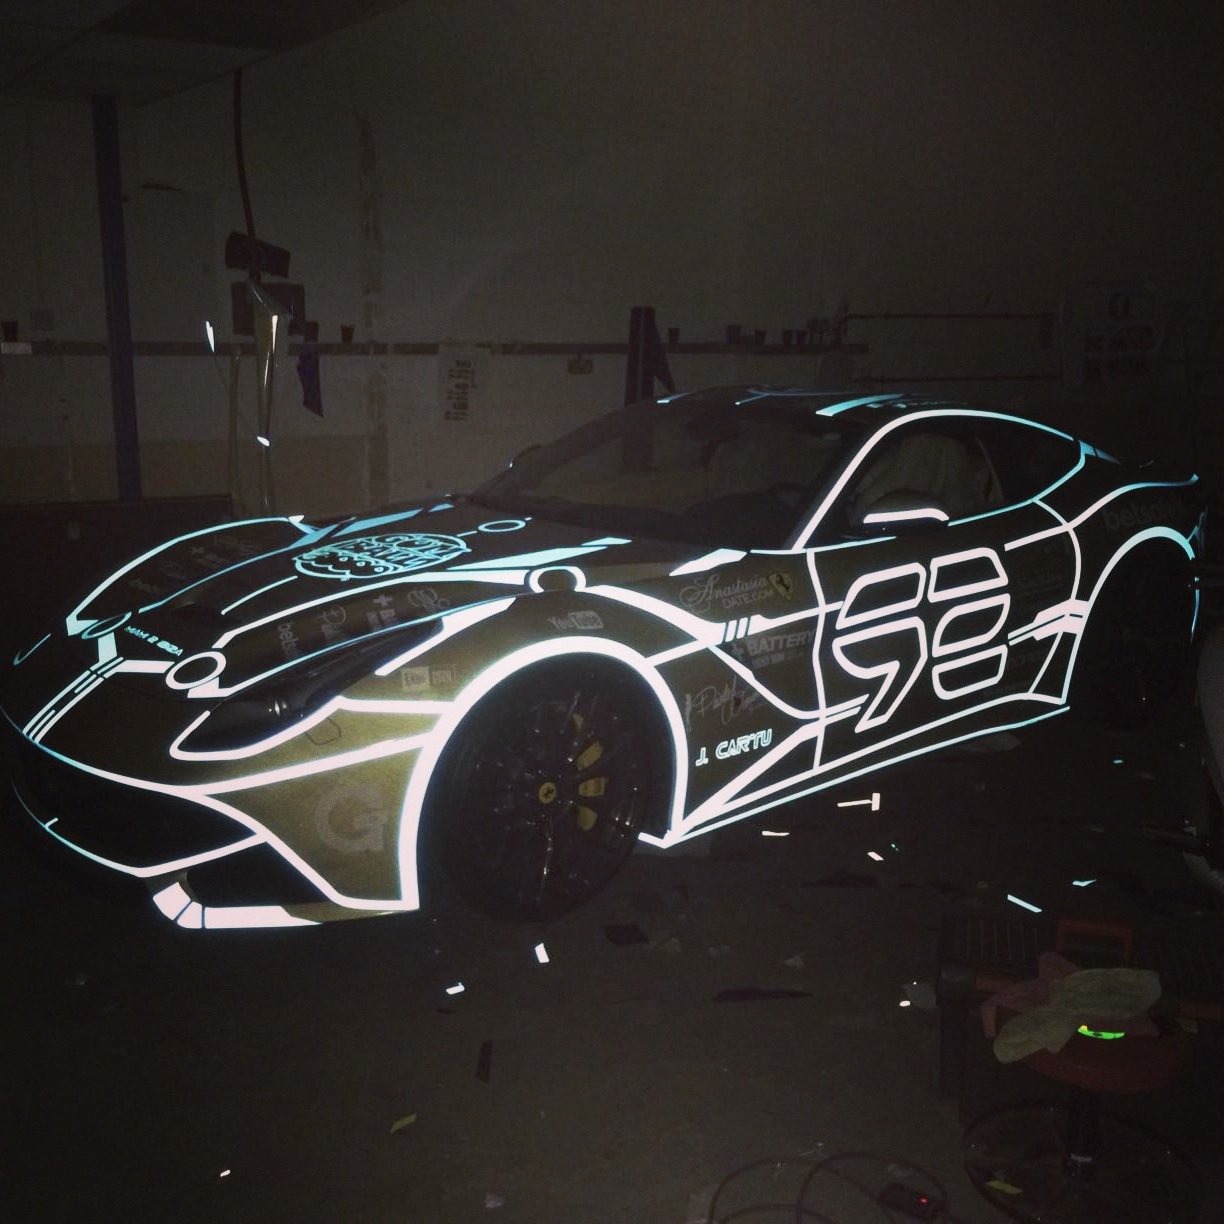 Celebrity Cars Blog 187 Josh Cartu Ferrari F12 Tron Wrap 4